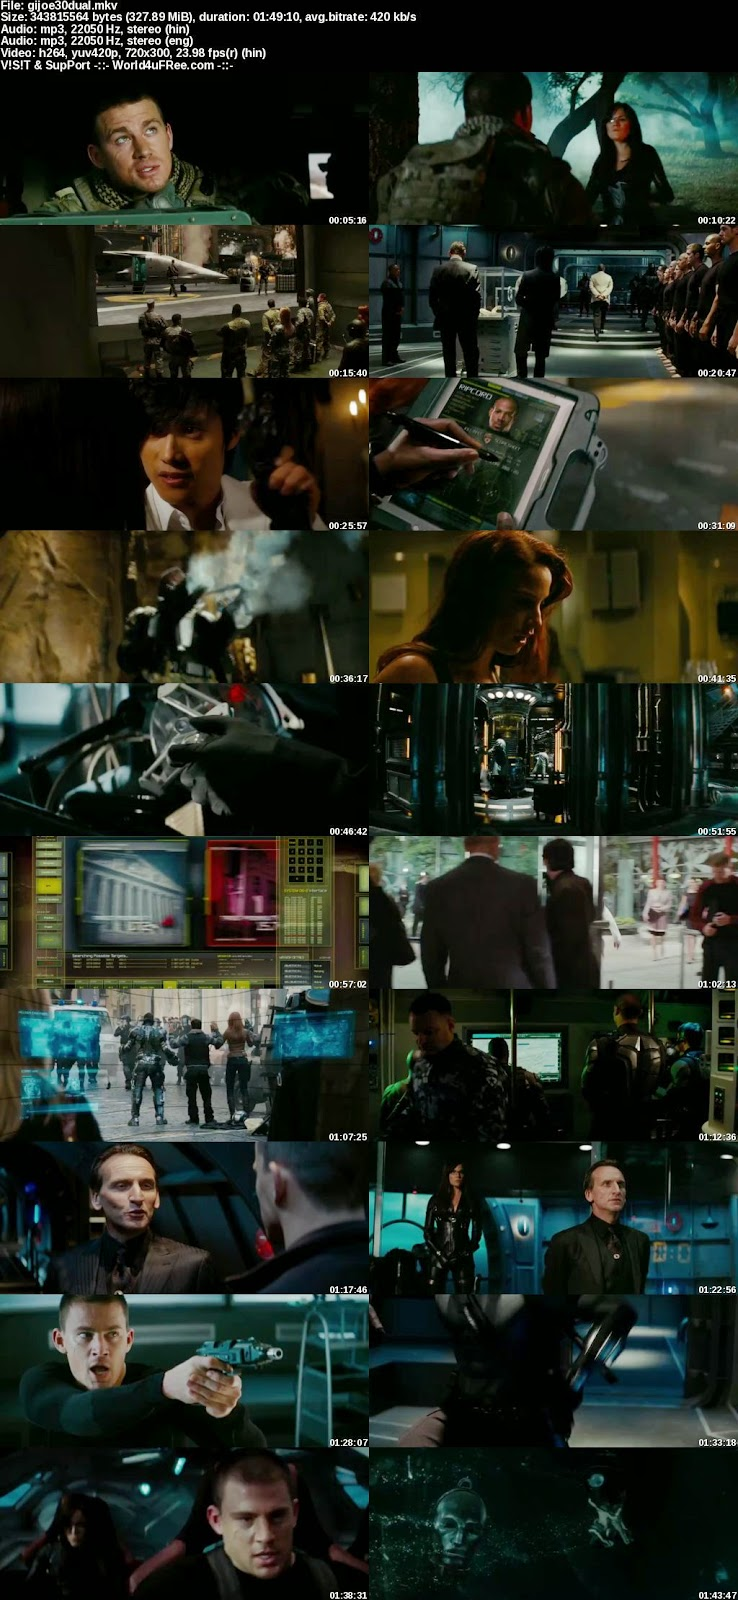 G.I.Joe The Rise of Cobra 2009 Dual Audio BRRip 480p 350MB classified-ads.expert hollywood movie G.I.Joe The Rise of Cobra 2009 hindi dubbed dual audio 480p brrip bluray compressed small size 300mb free download or watch online at classified-ads.expert